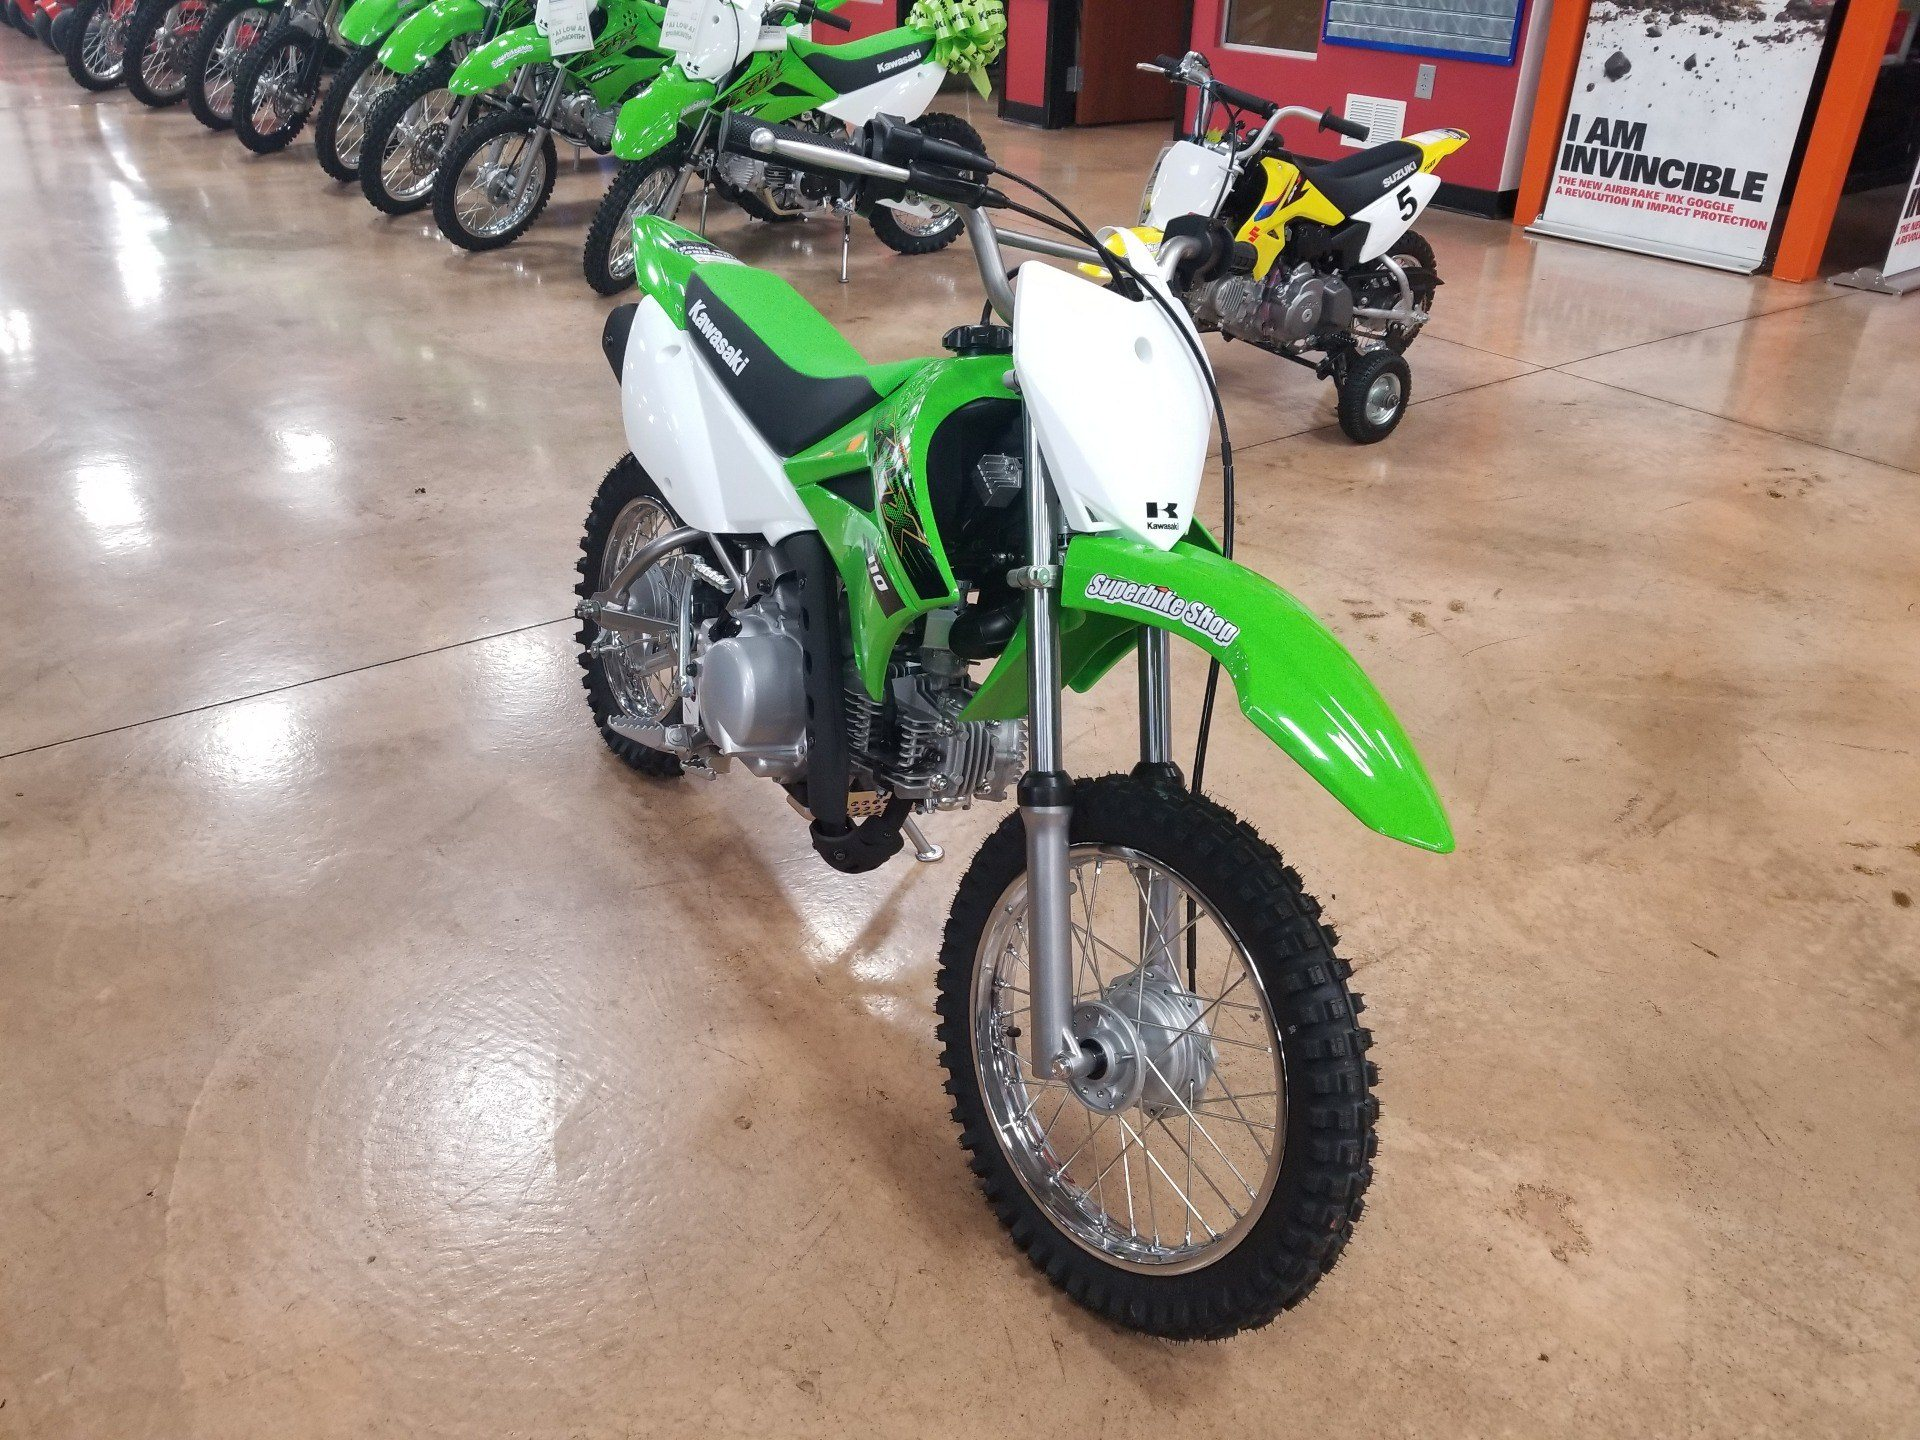 2020 Kawasaki KLX 110 in Evansville, Indiana - Photo 4